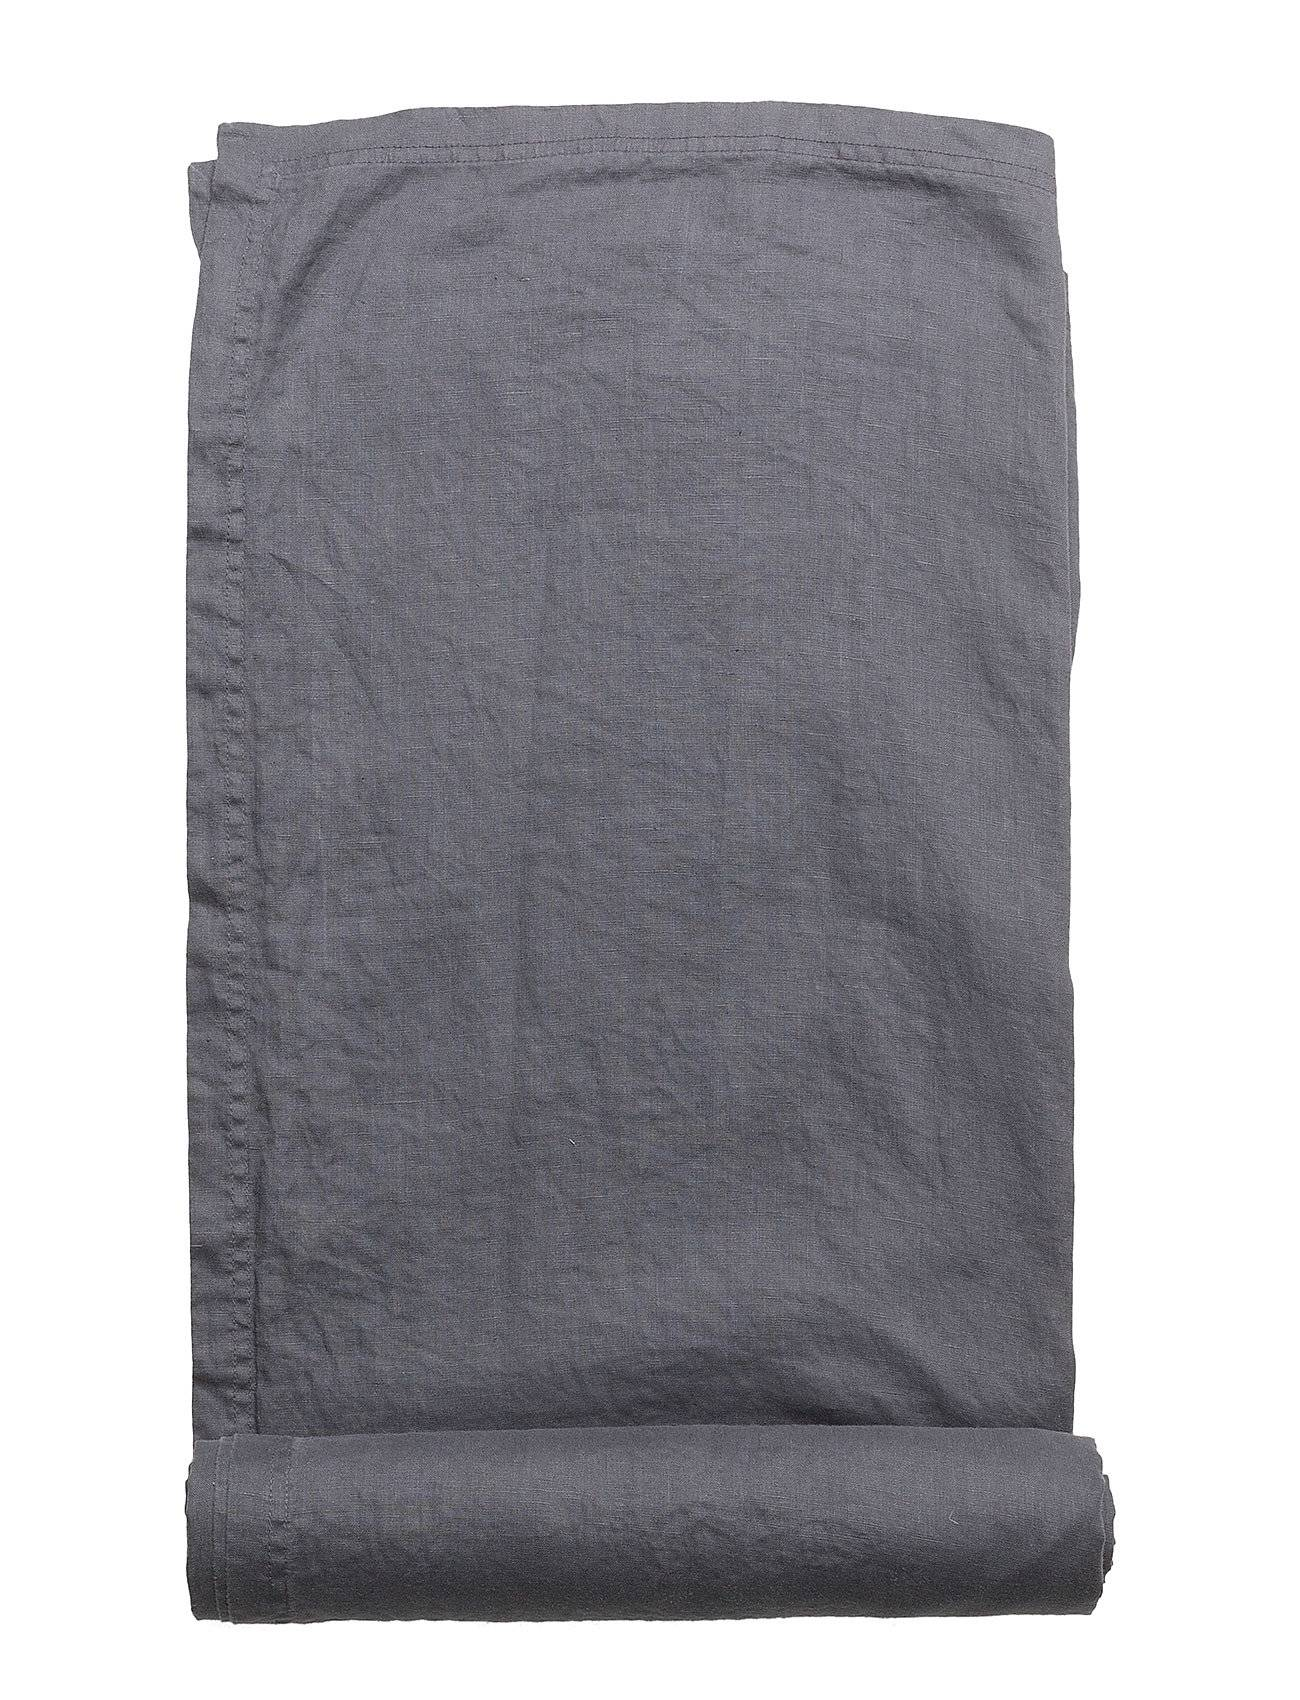 Gripsholm Table Cloth Washed Linen